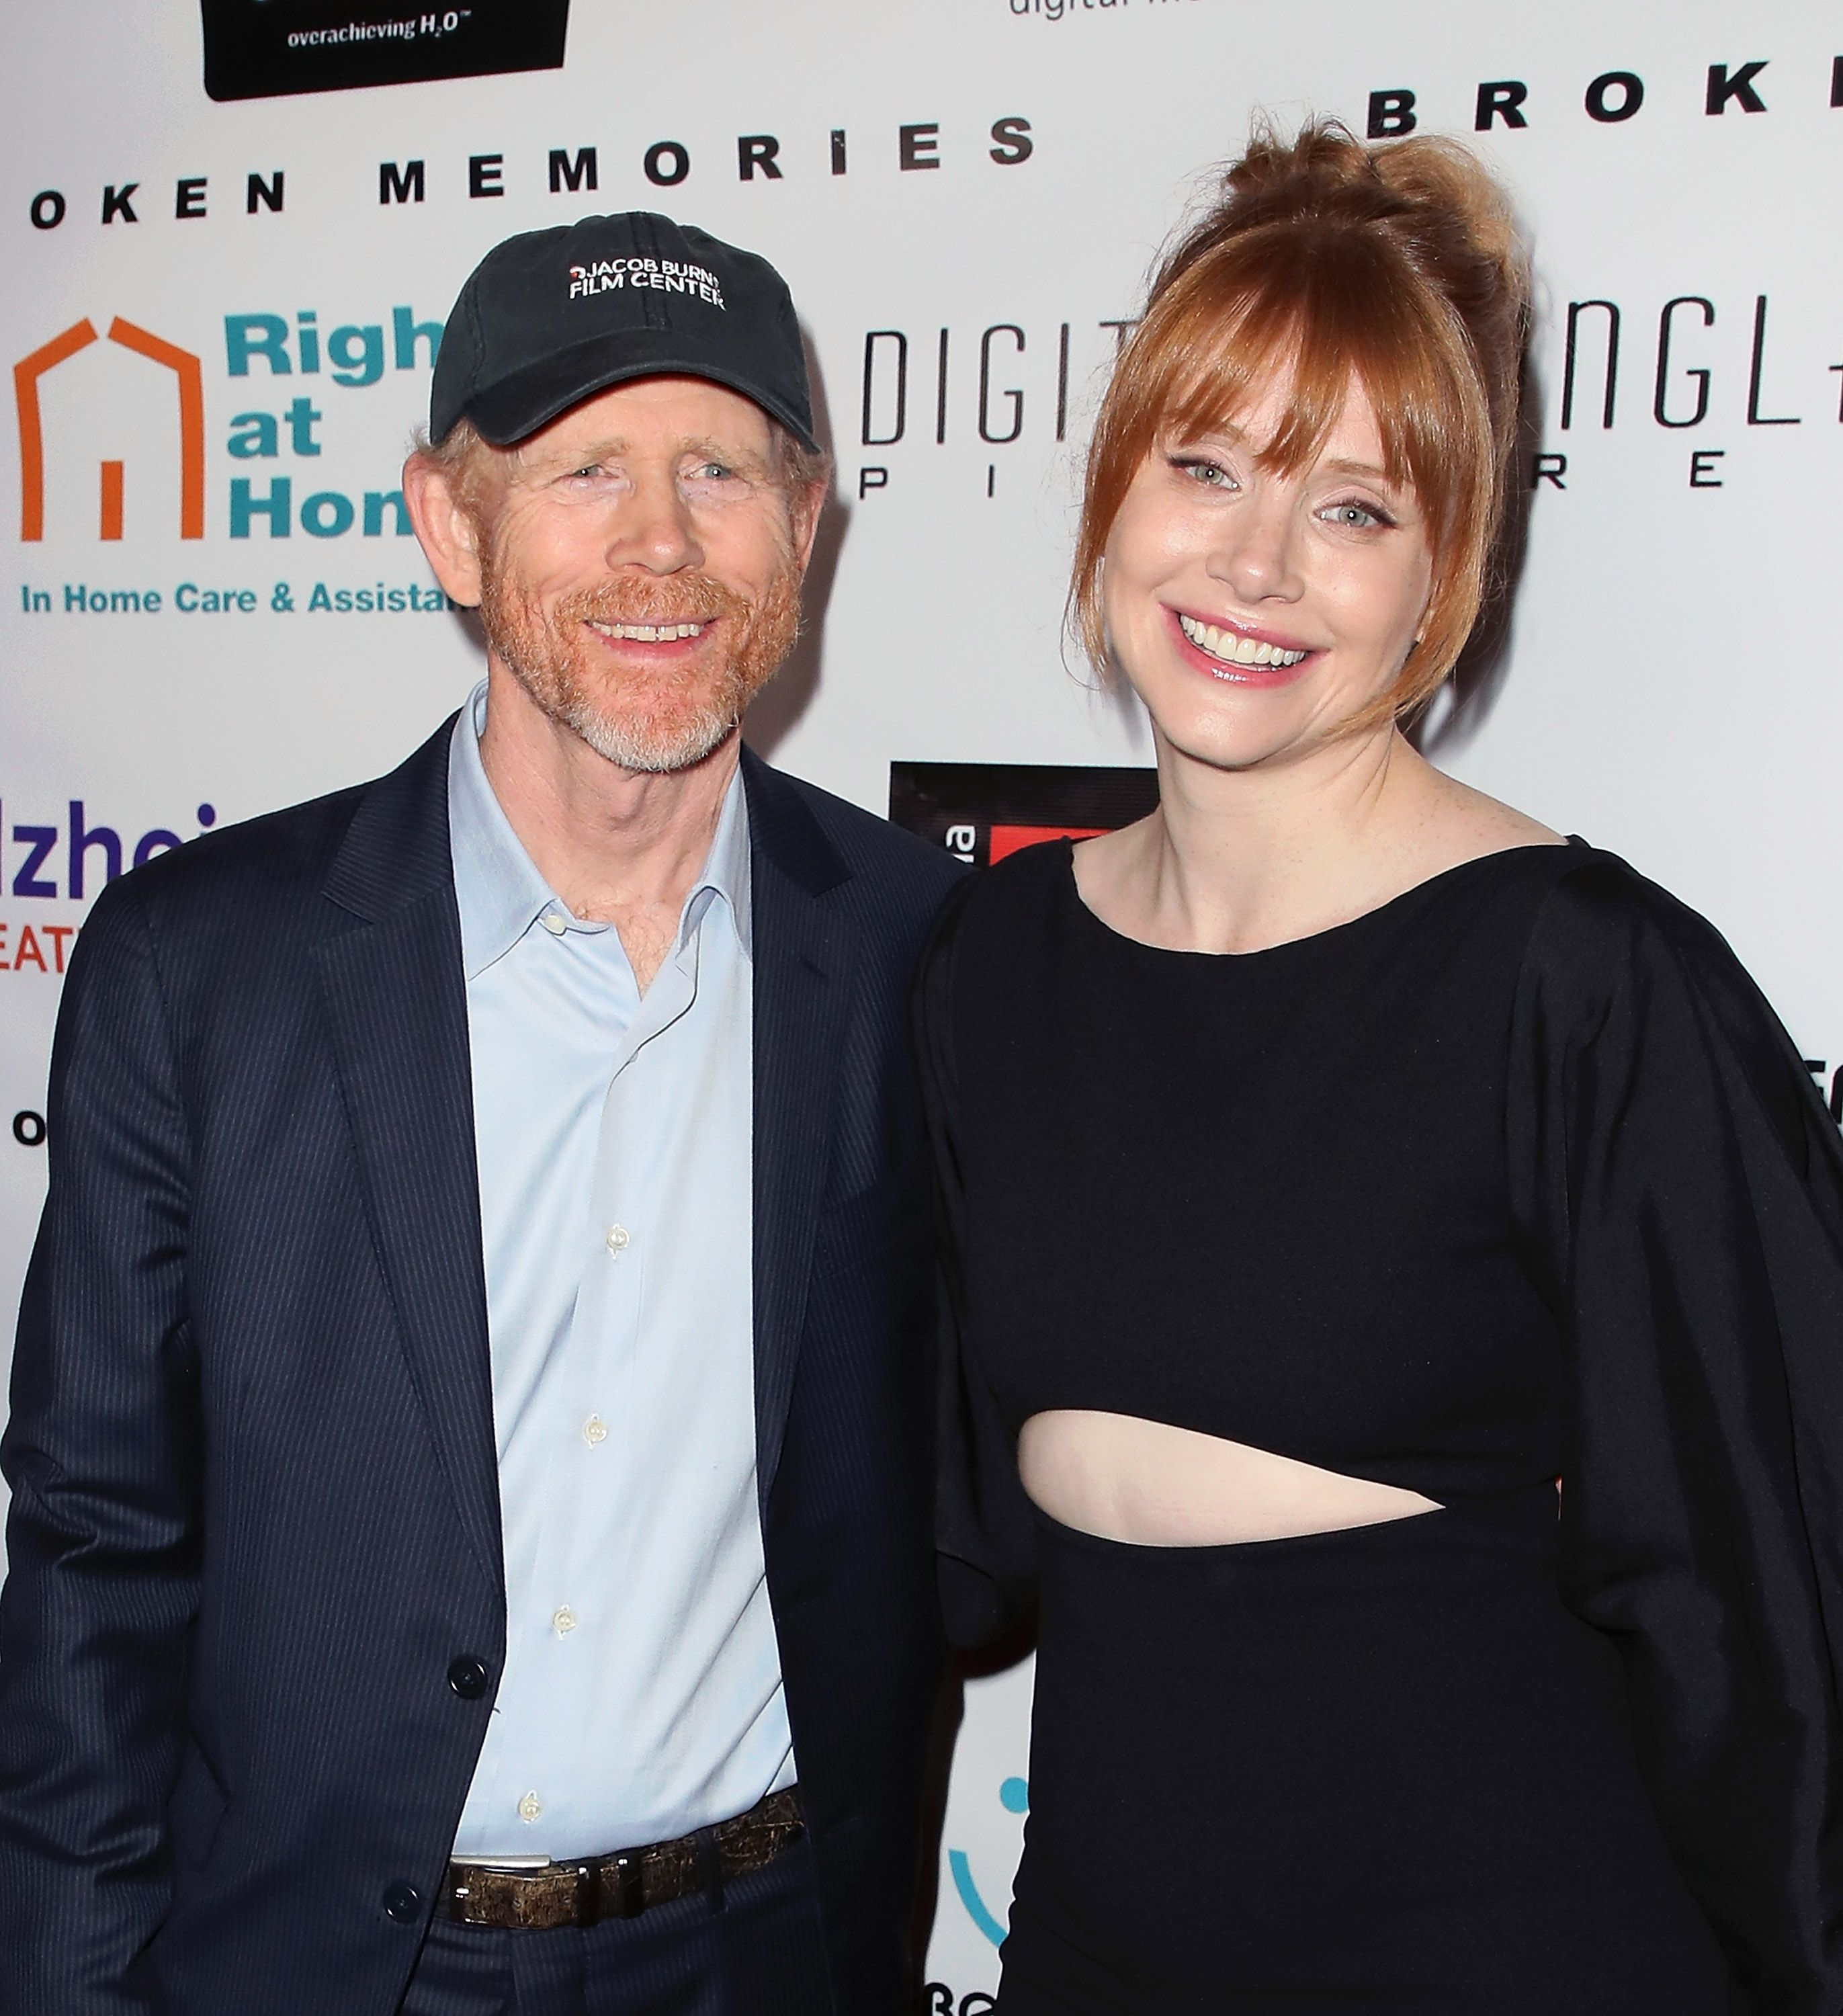 Famous Hollywood film director Ron Howard and his daughter Bryce Dallas Howard / Getty Images